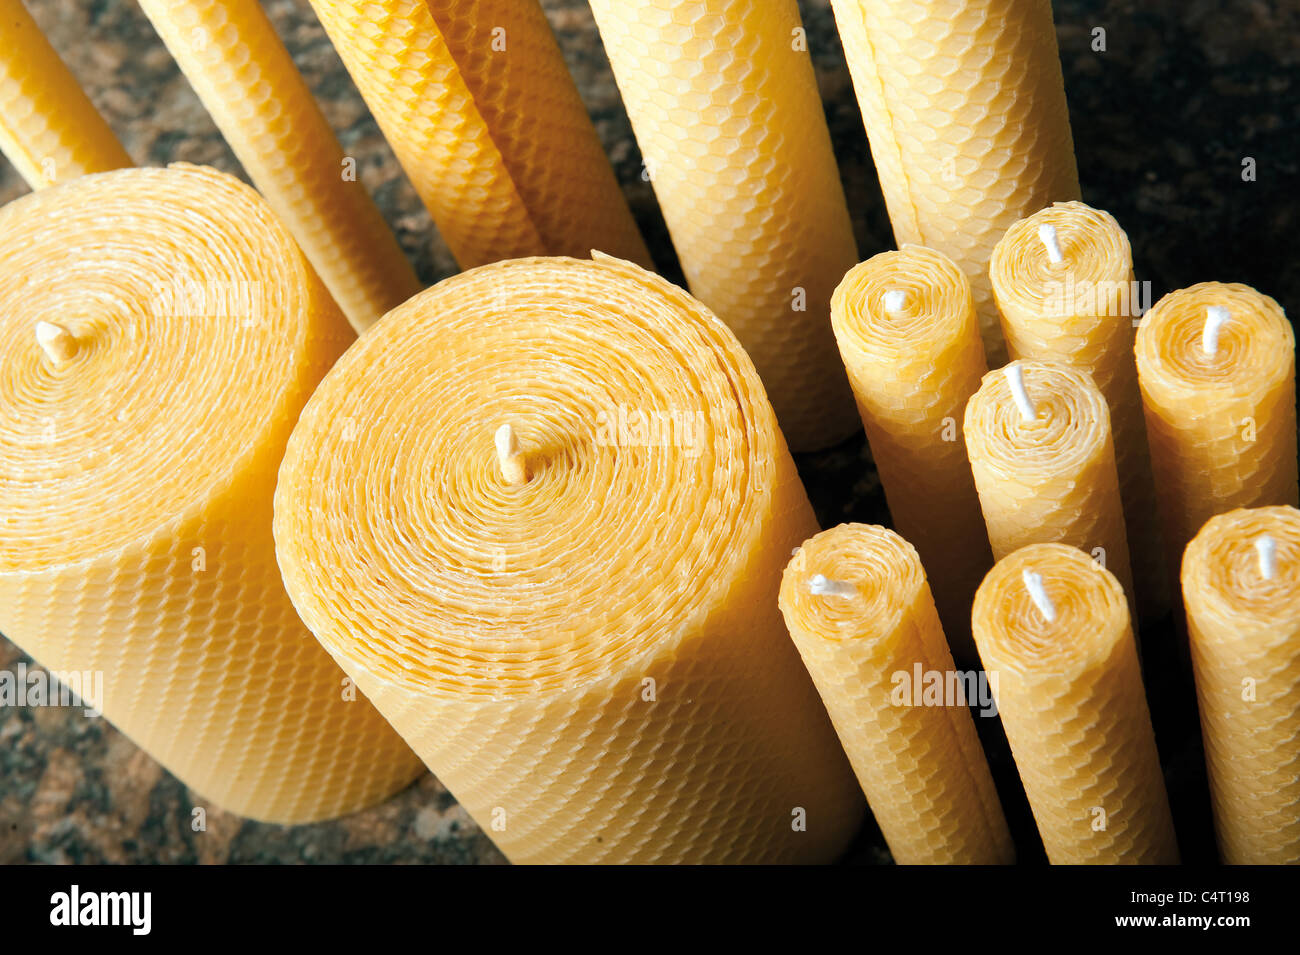 A selection of beeswax candles candle traditional hand made wax wick bee - Stock Image